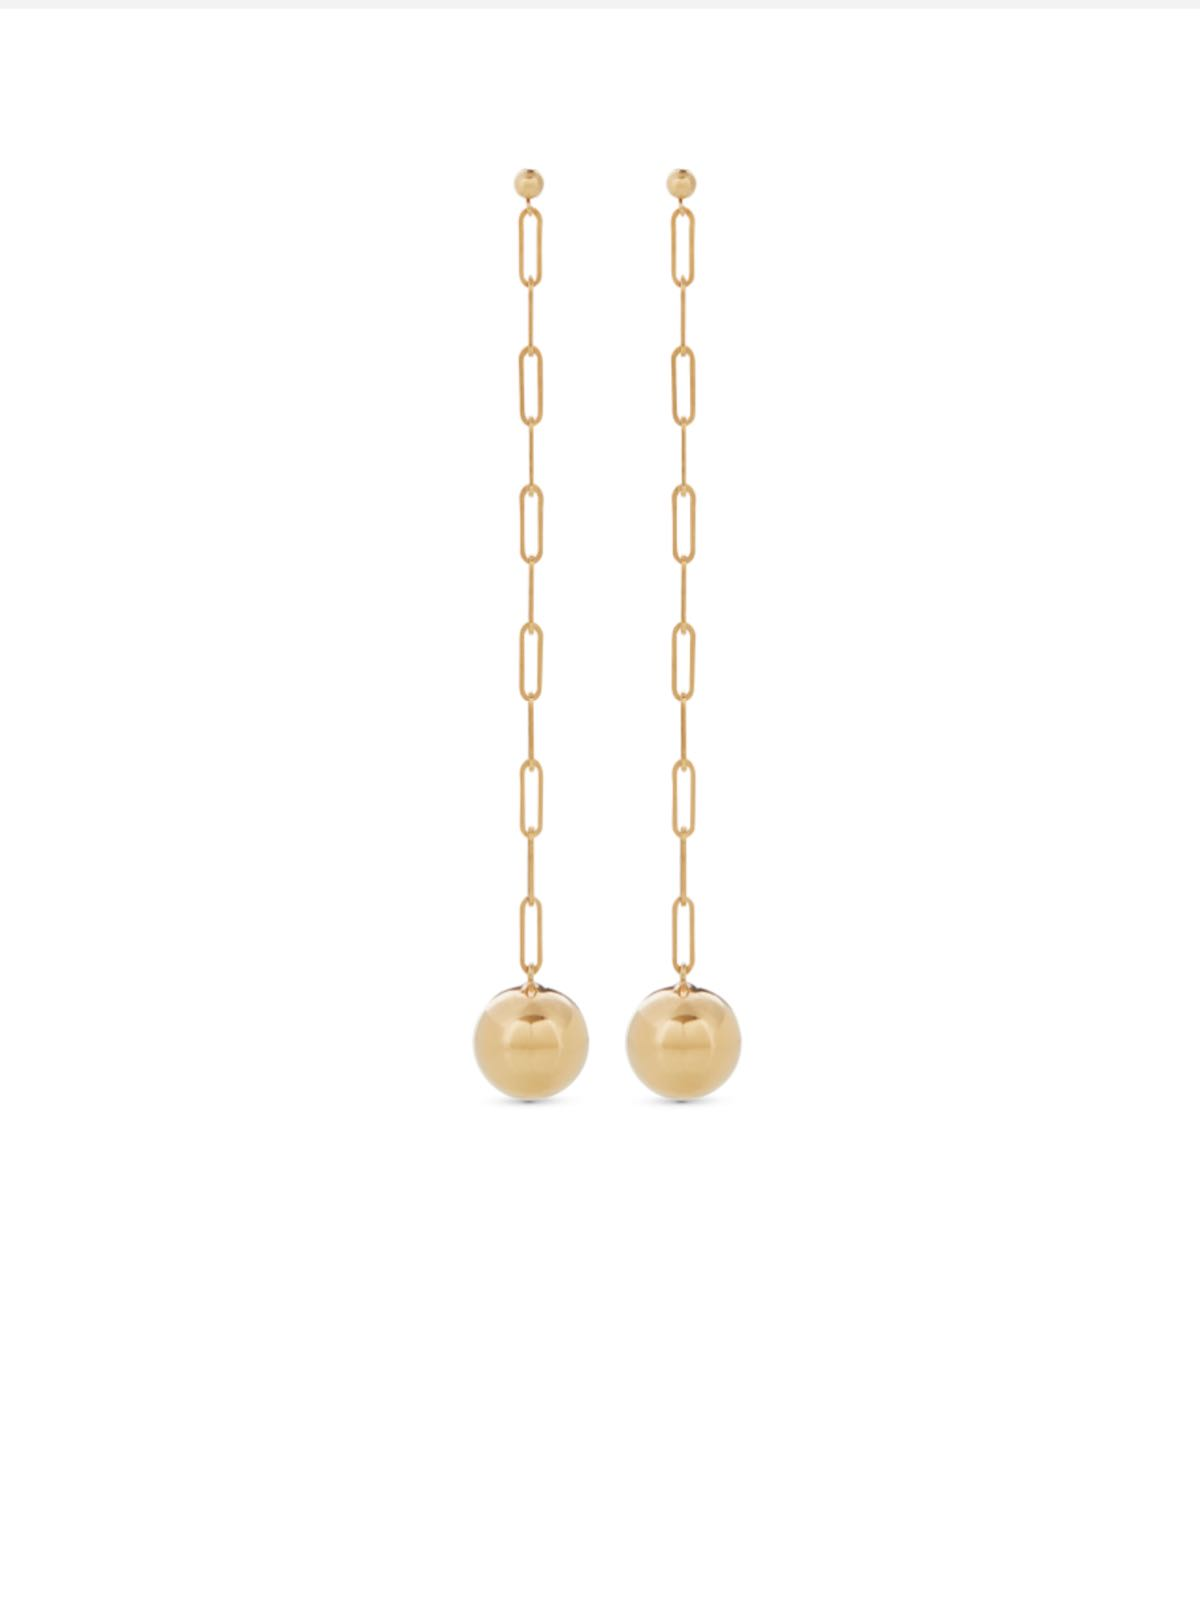 Ceres 24K Goldpleated eardrops